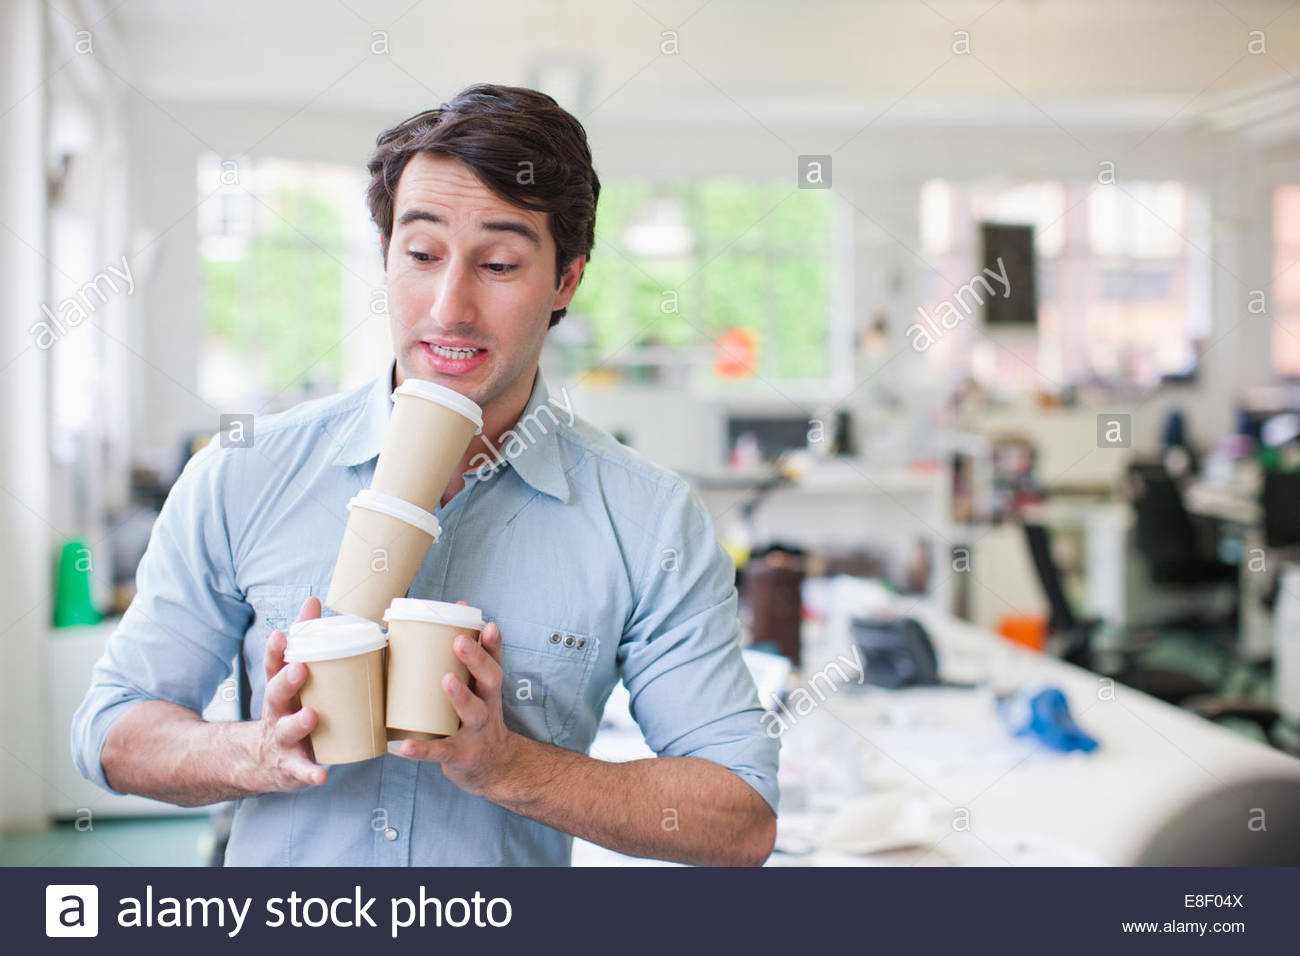 Businessman balancing coffee cups - Stock Image